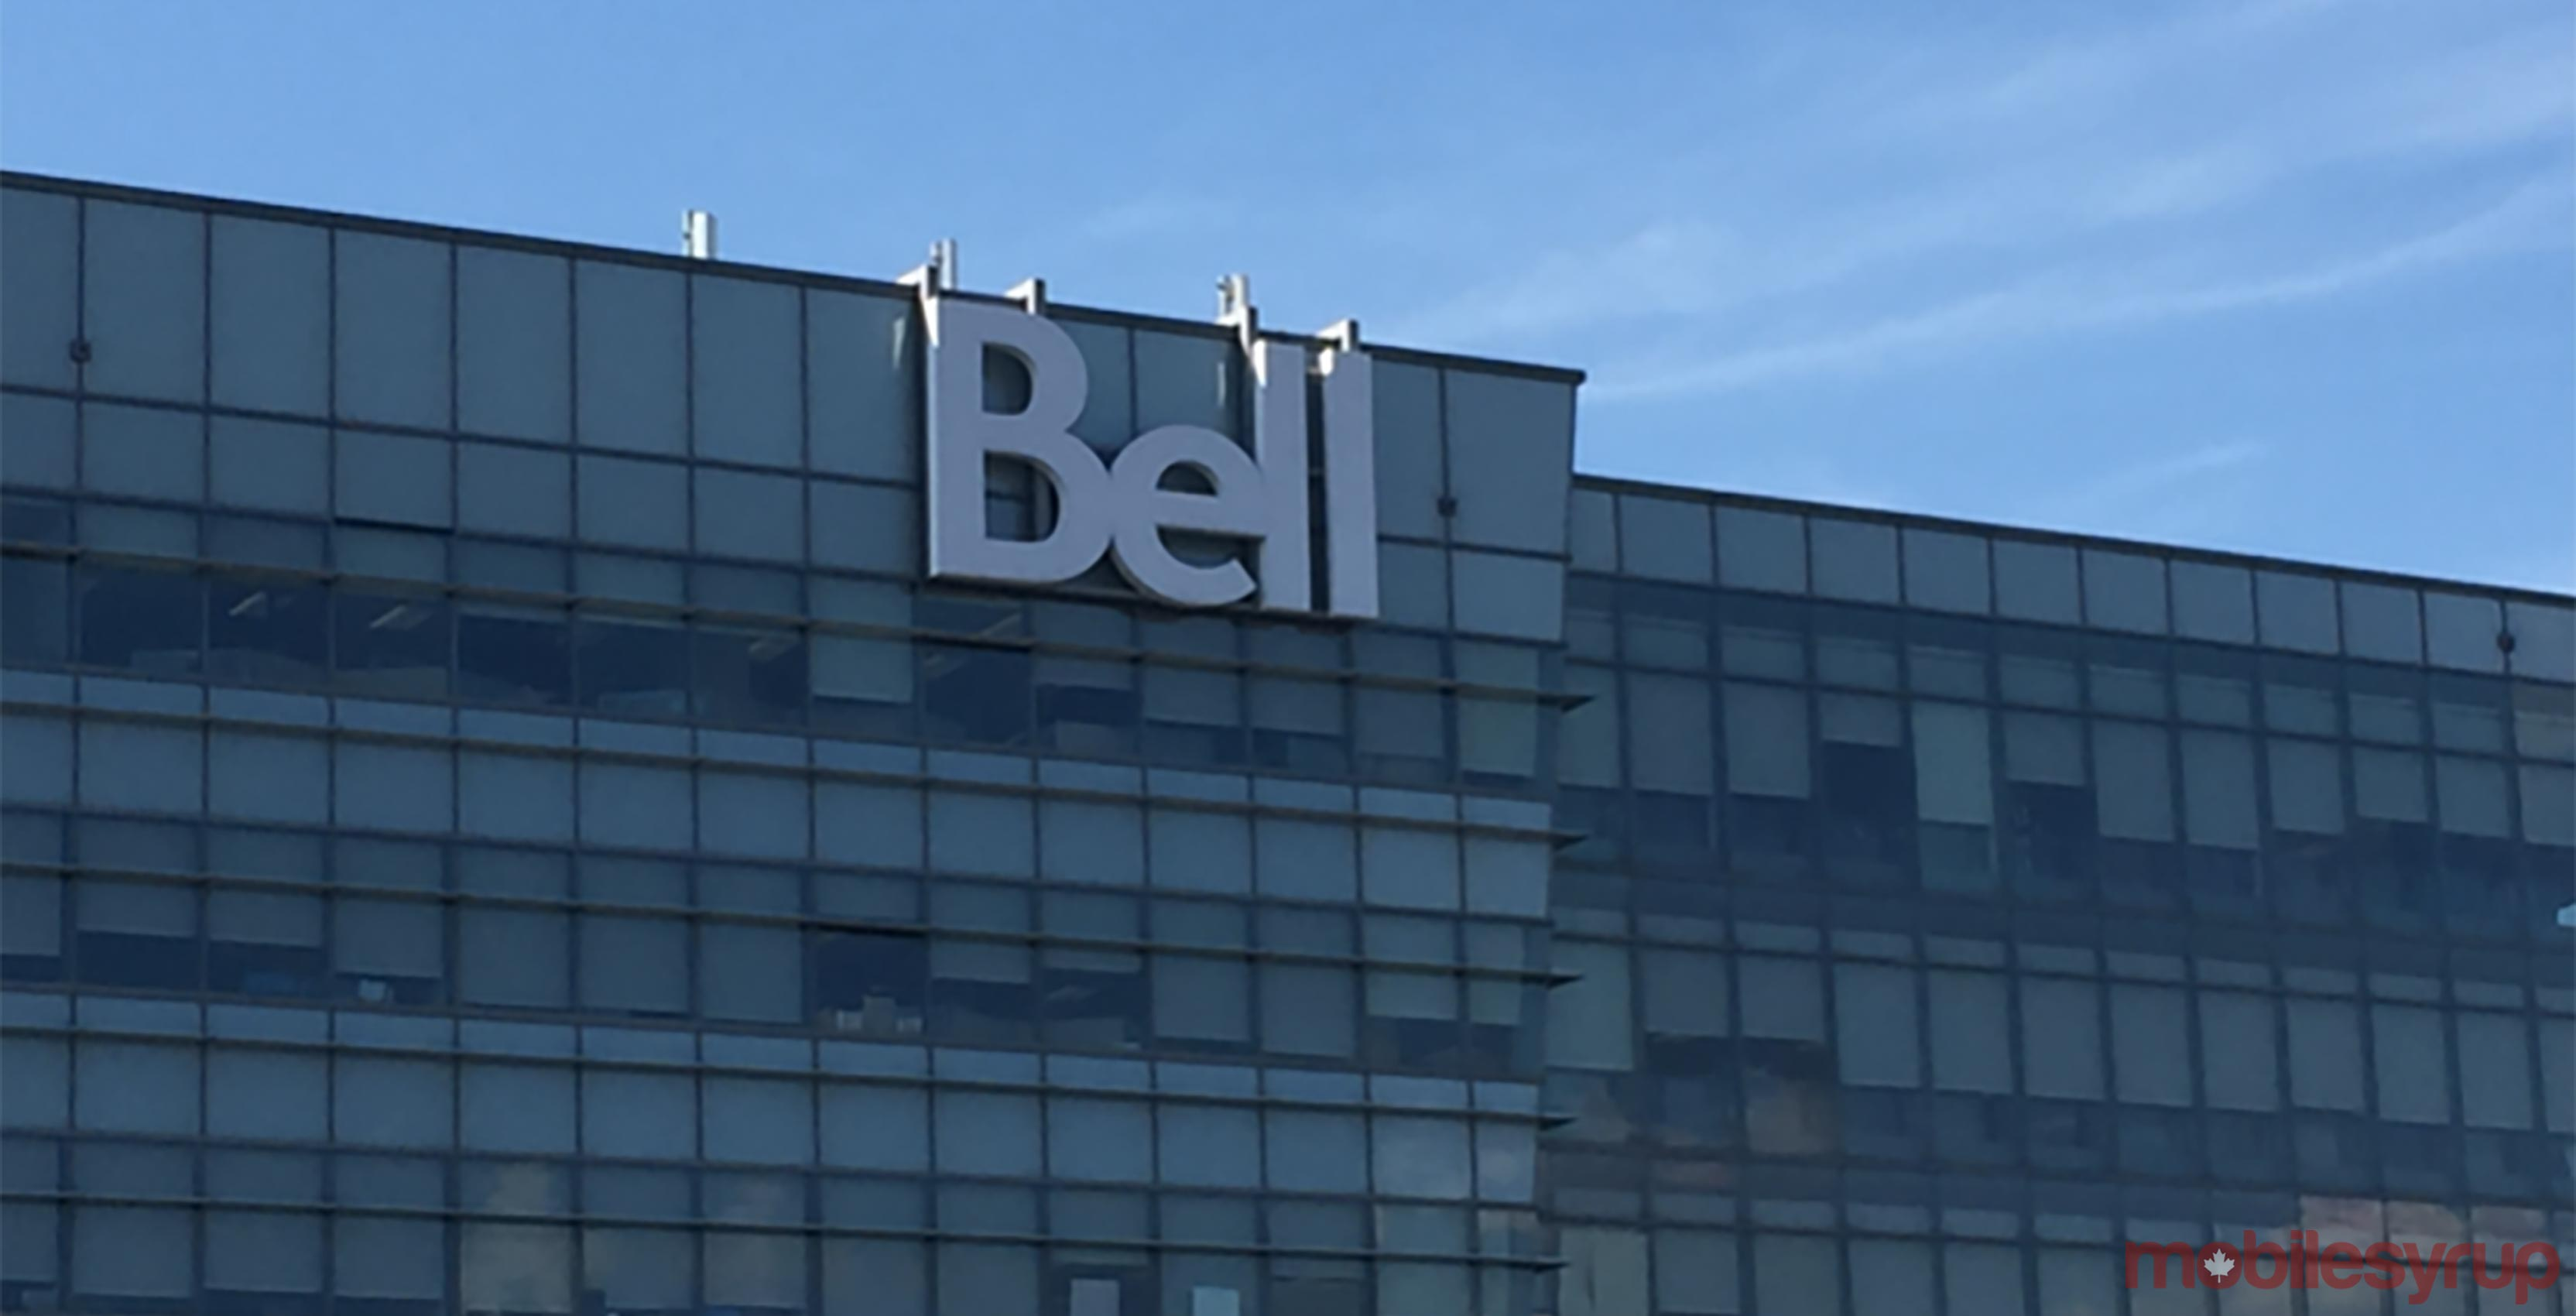 Bell building with logo